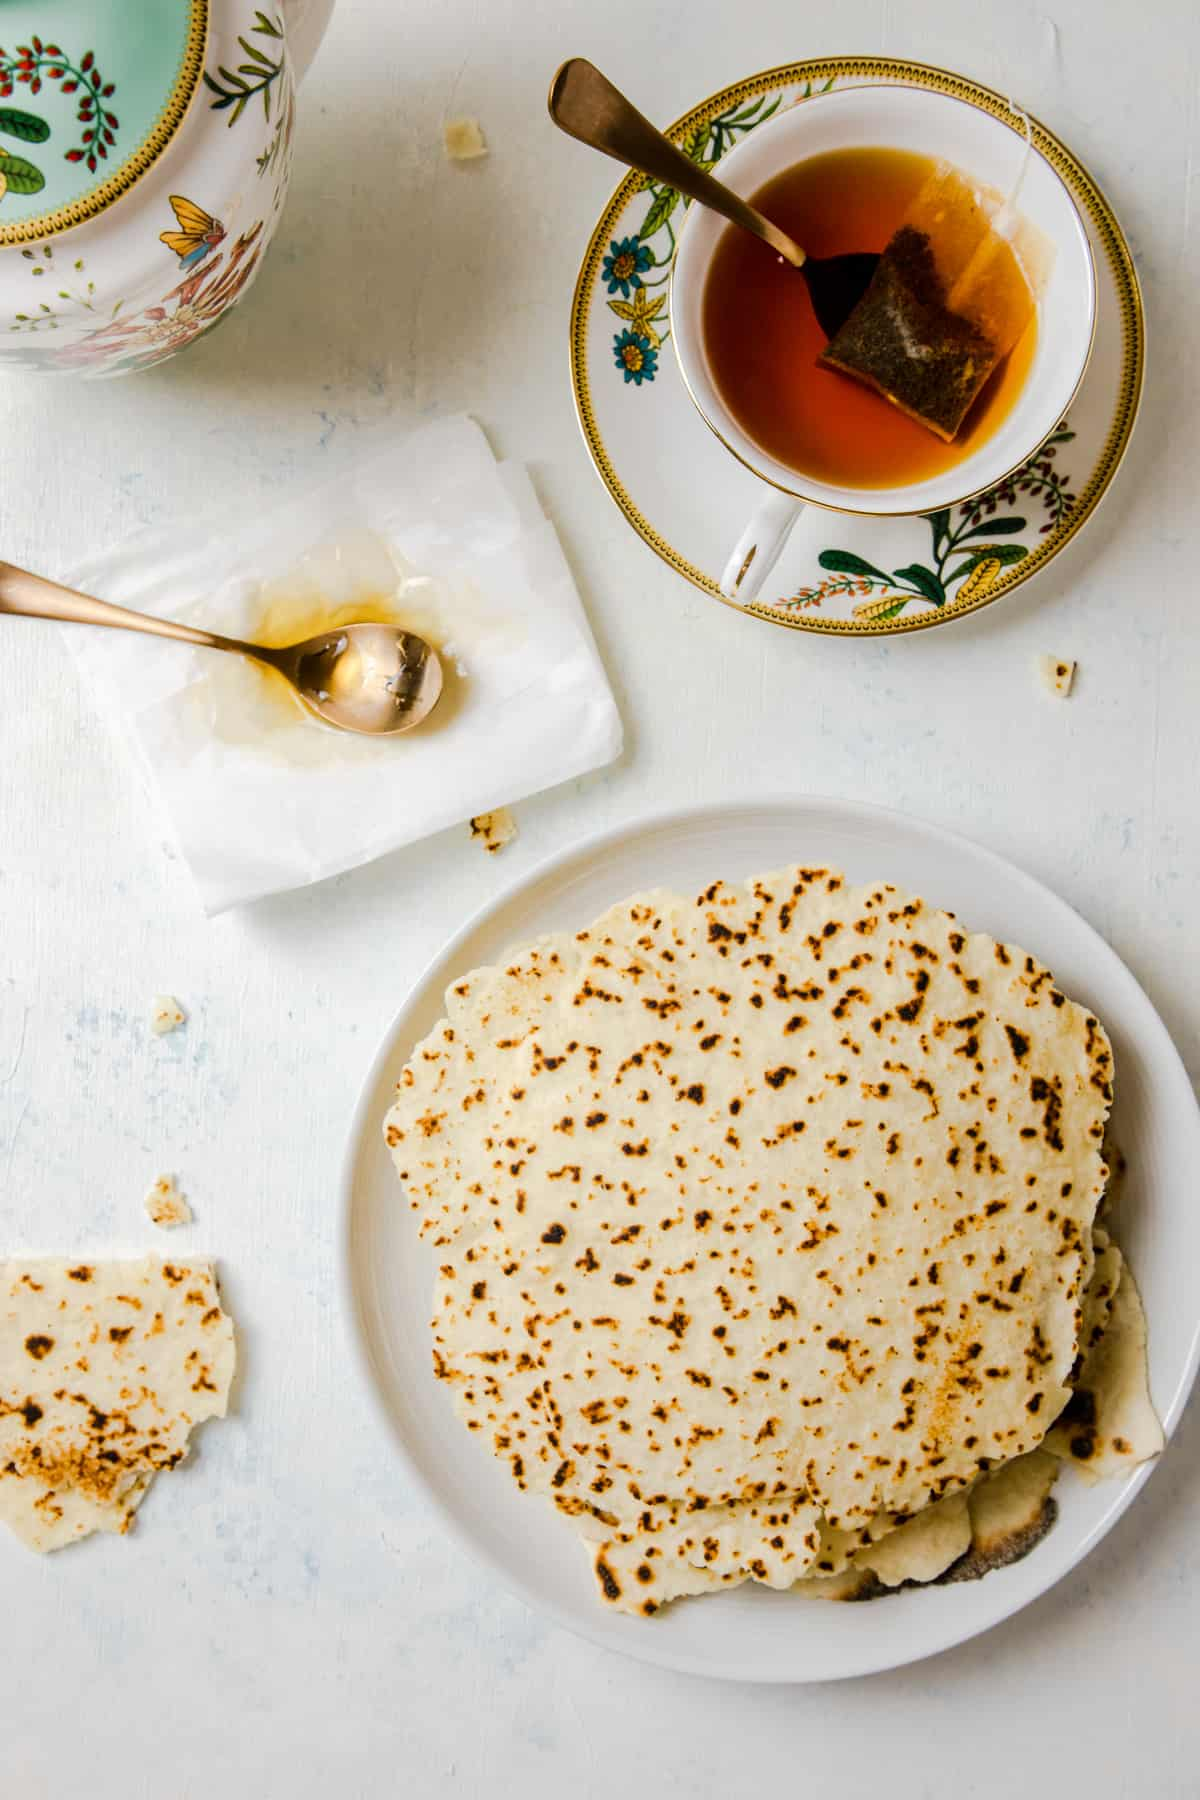 gluten-free flatbread top view surrounded by a tea cup and a tea pot.